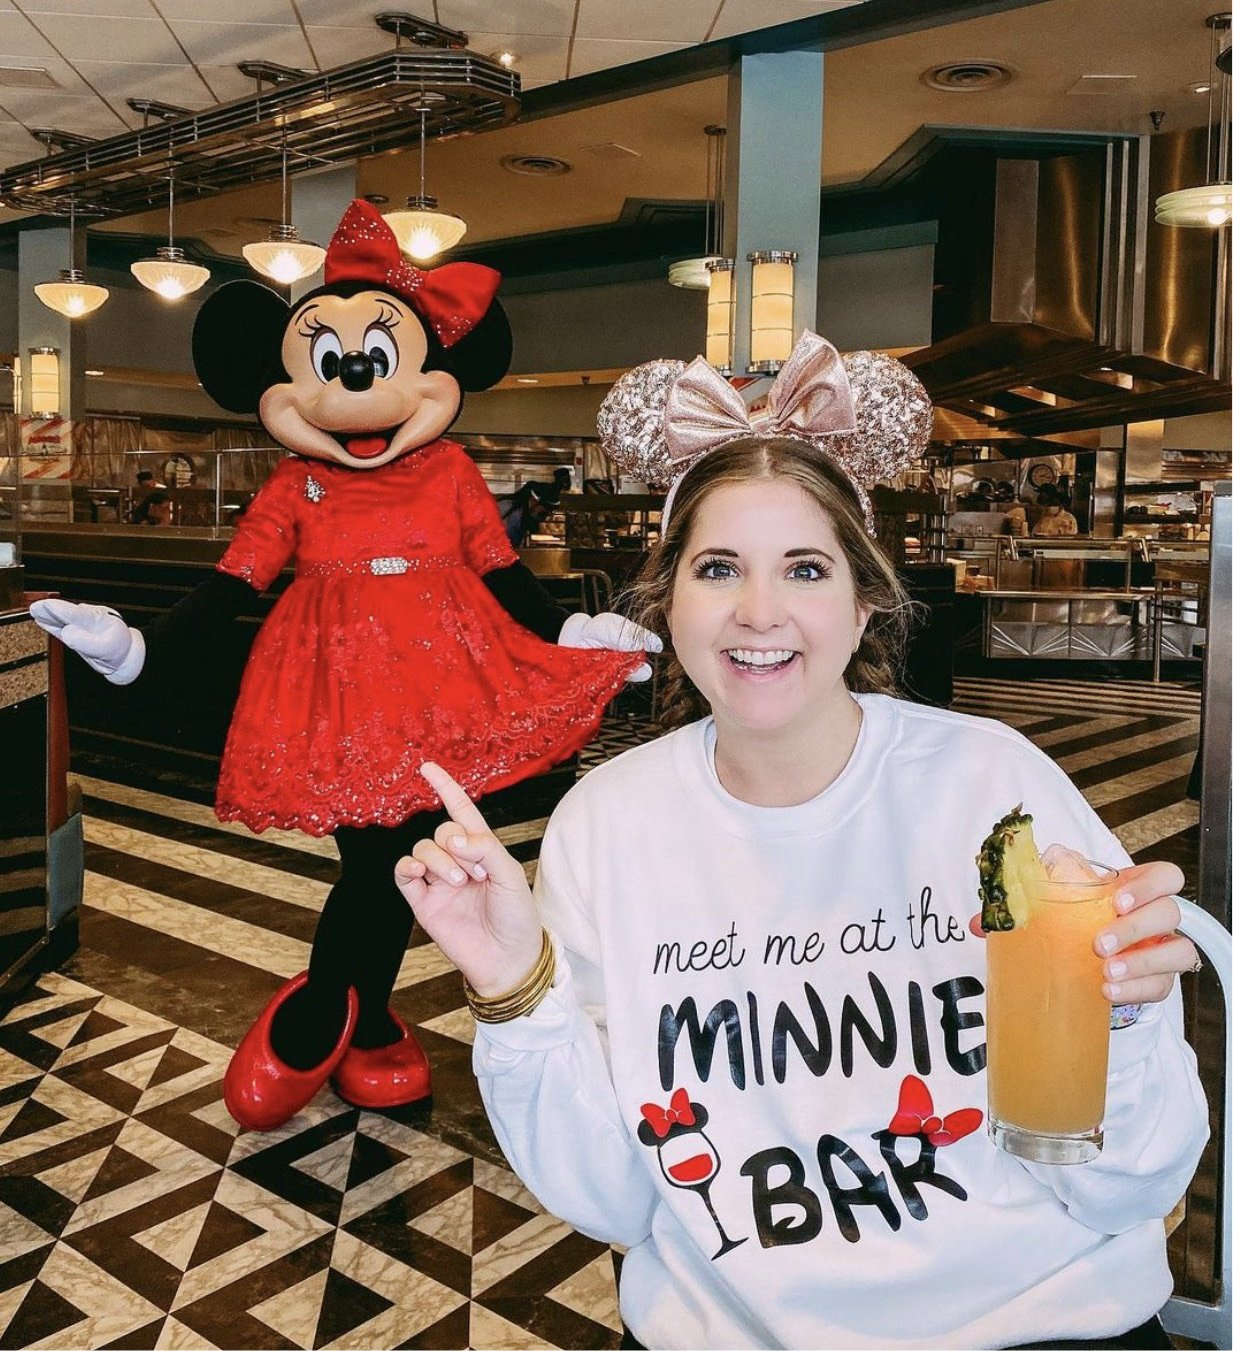 Meet me at the Minnie Bar Sweatshirt - Sprinkled With Pink #bachelorette #custom #gifts